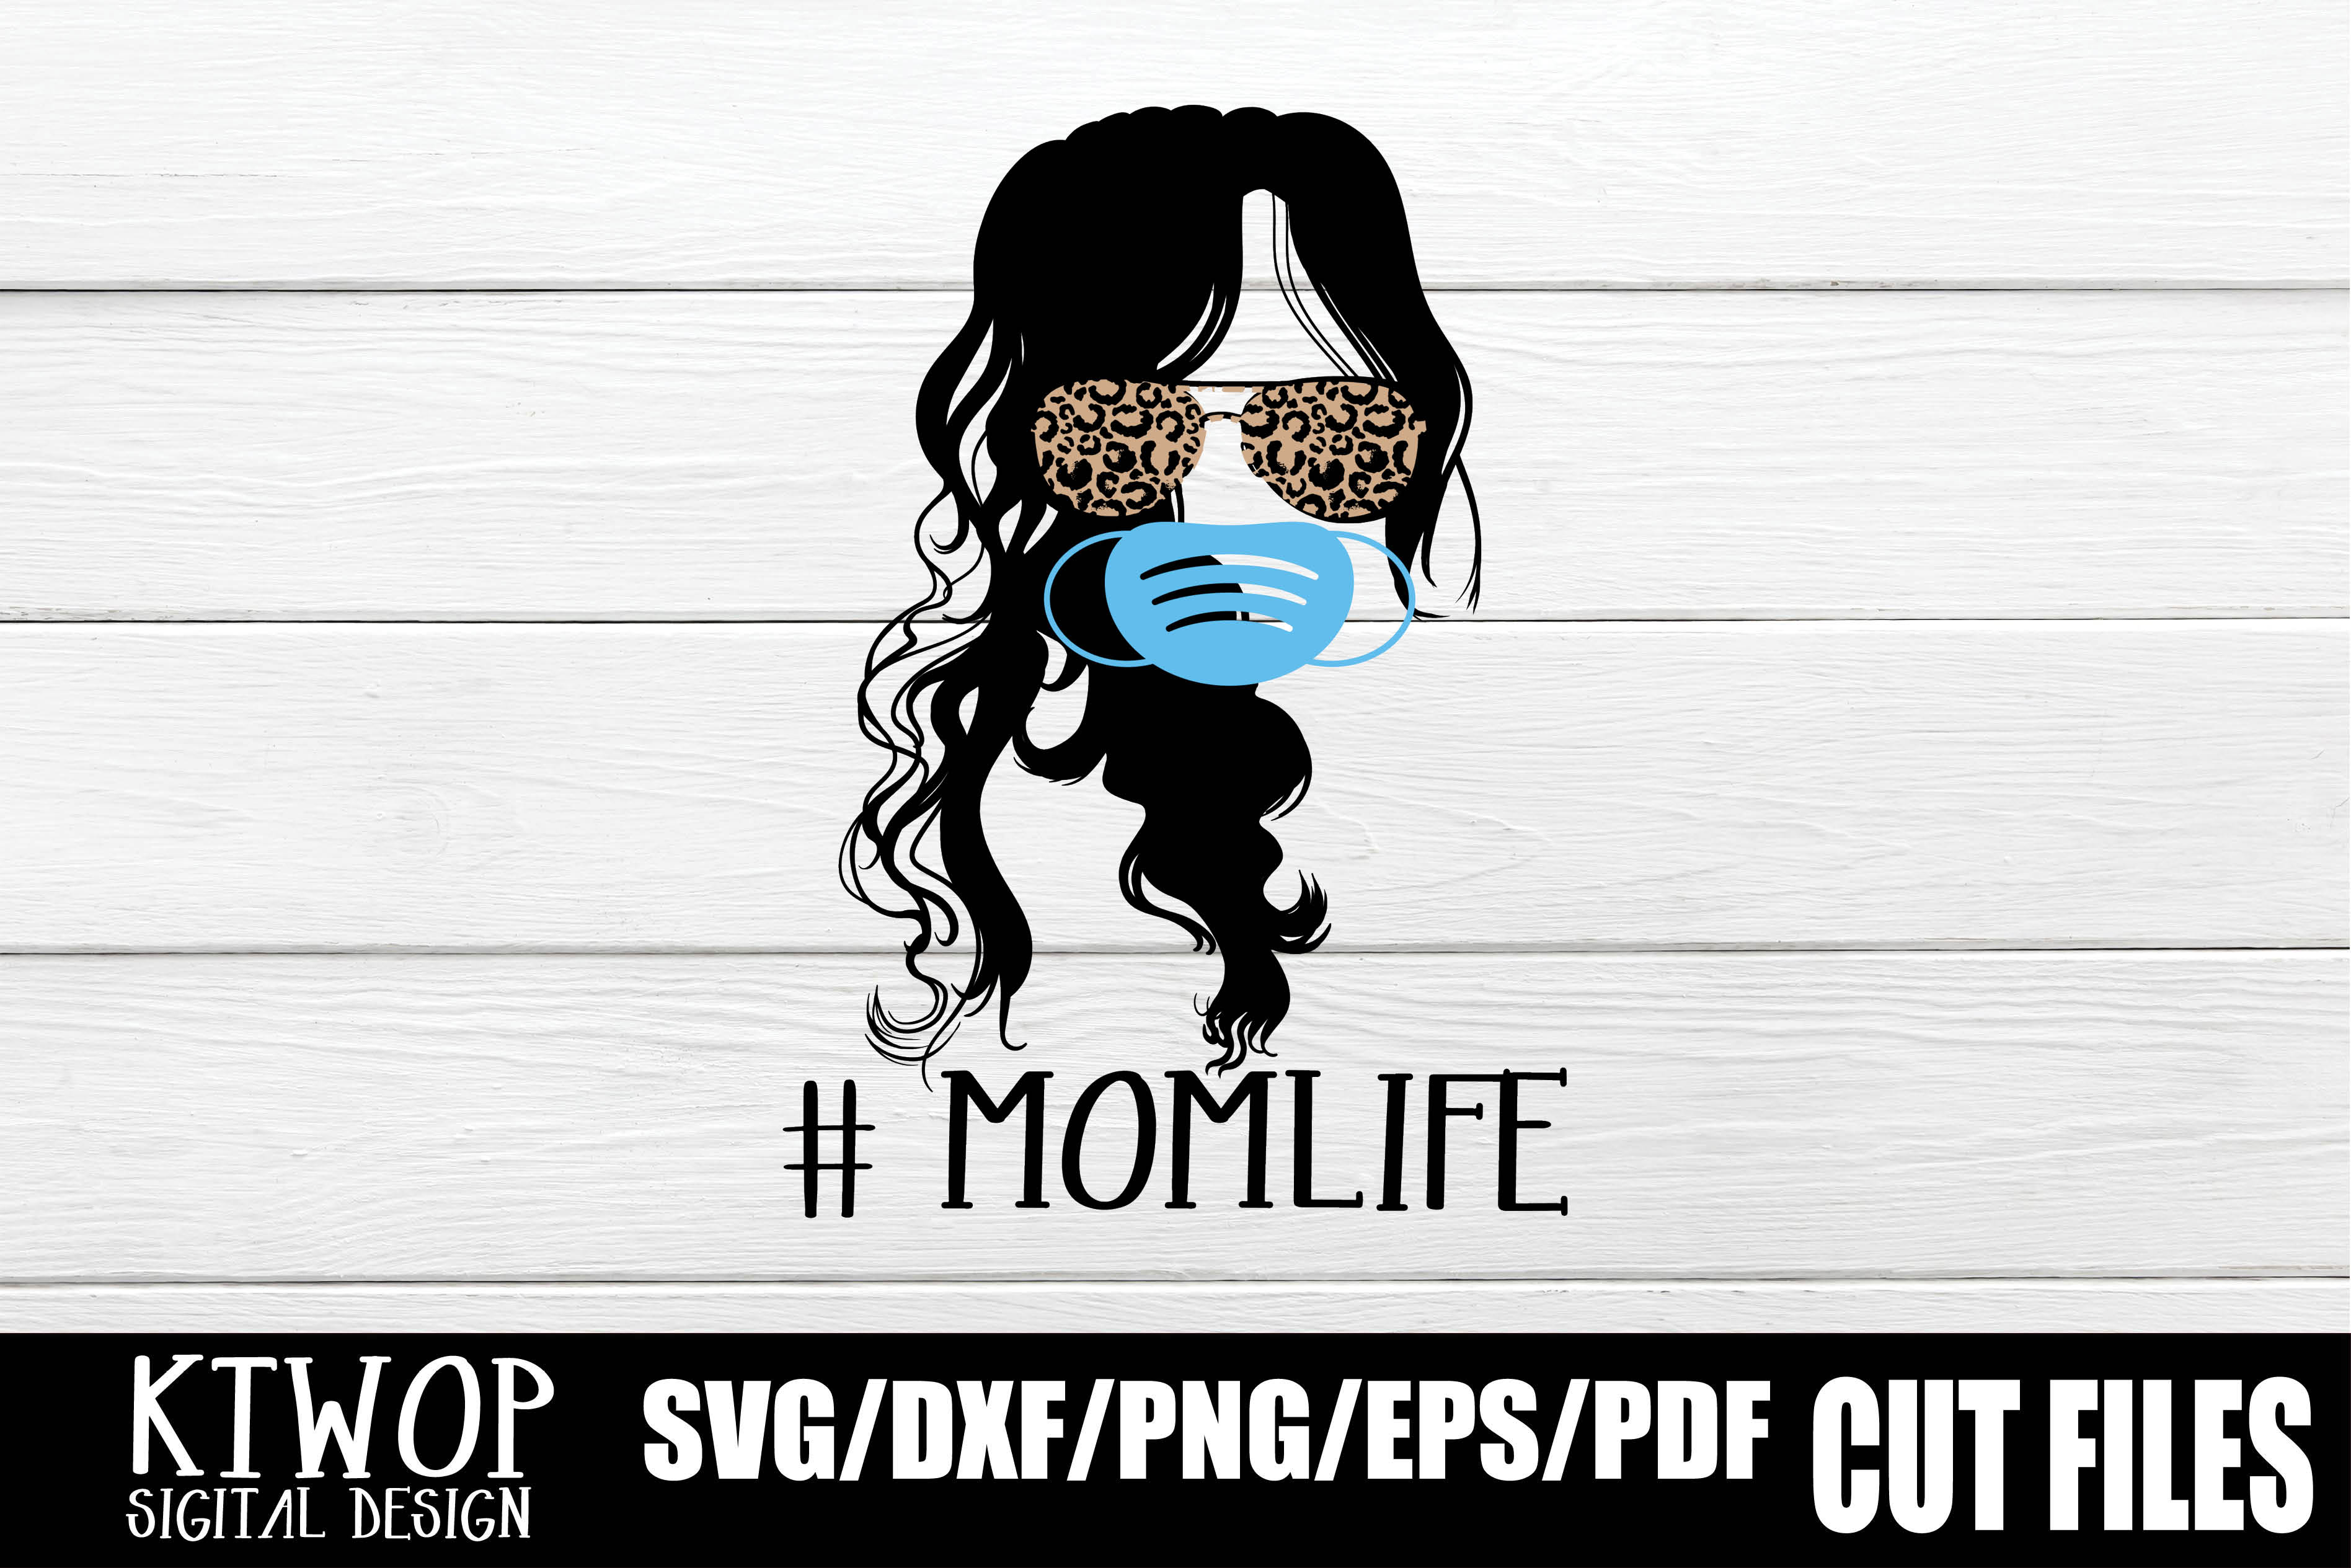 Download Free Momlife Graphic By Ktwop Creative Fabrica for Cricut Explore, Silhouette and other cutting machines.